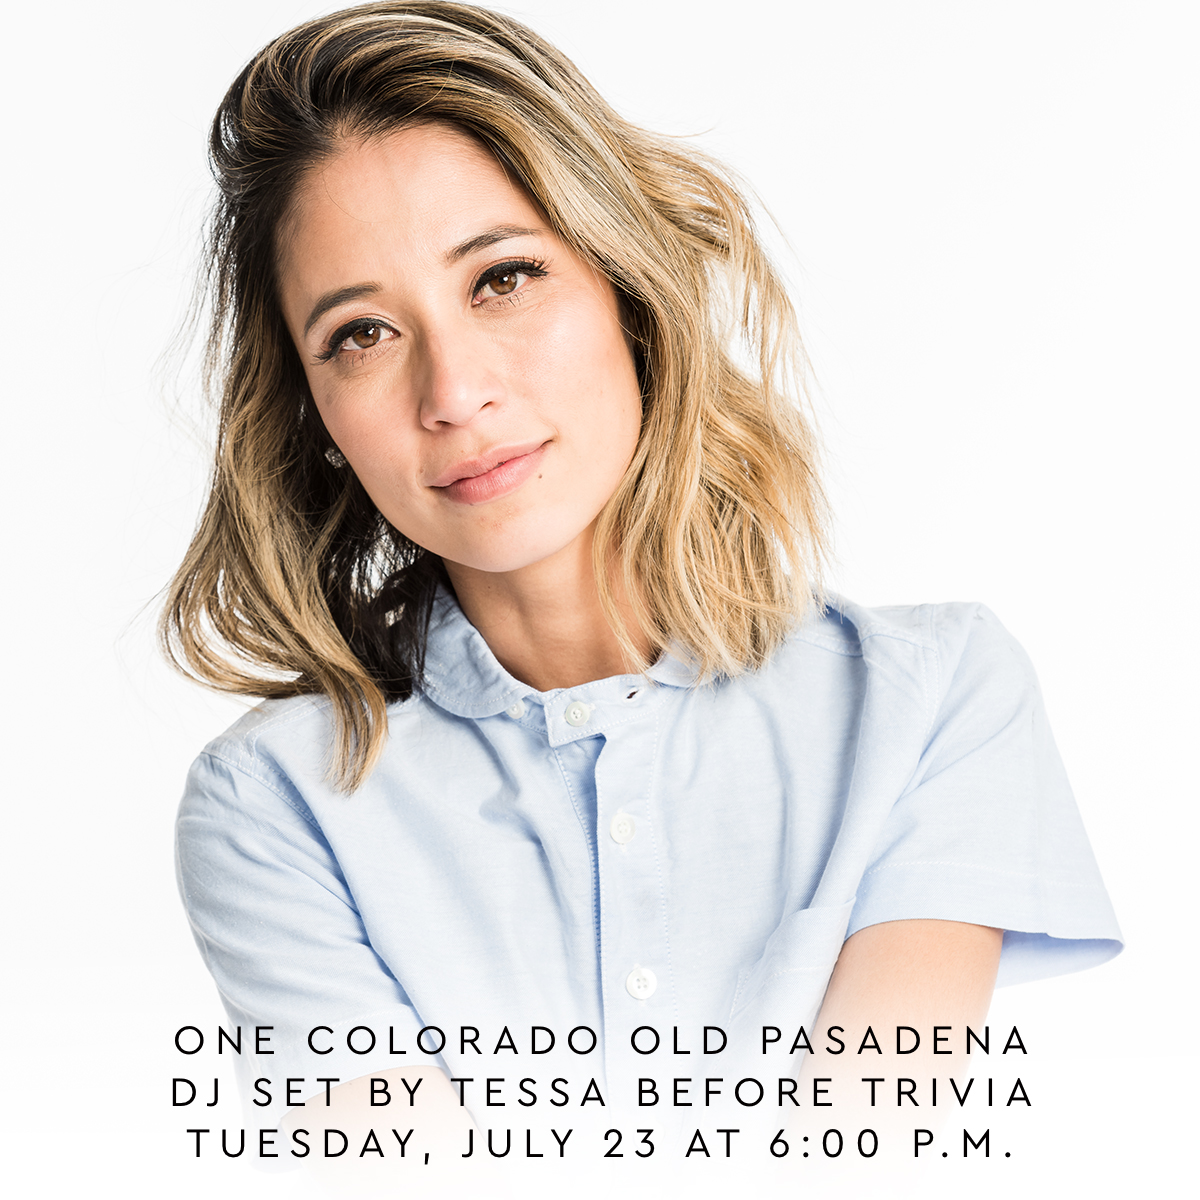 One Colorado Trivia Night - Tessa 7-23-19.jpg